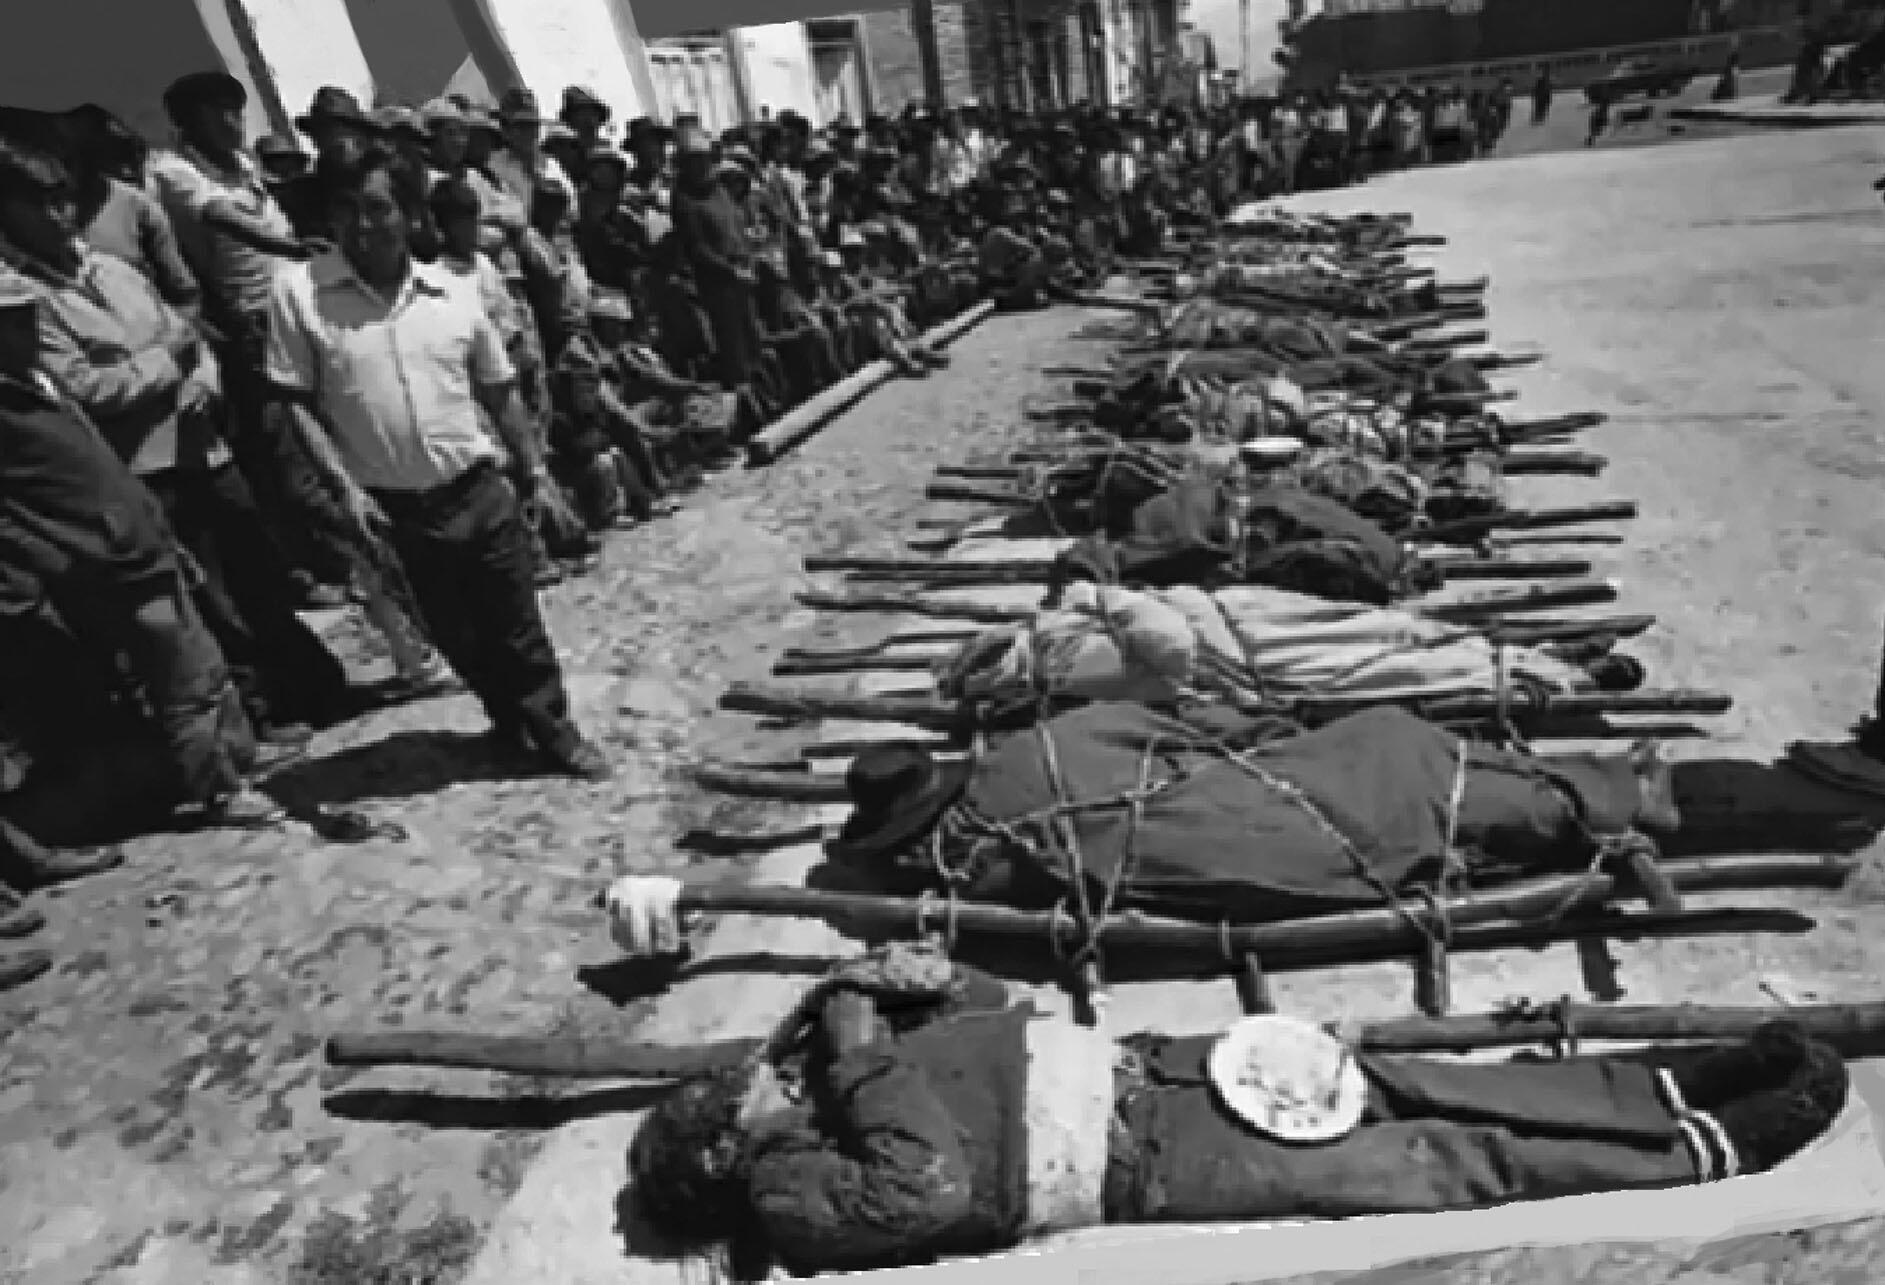 Bodies of people killed in the 1983 Lucanamarca massacre lie in the street. (Image courtesy of Yuyanapaq-LUM.)